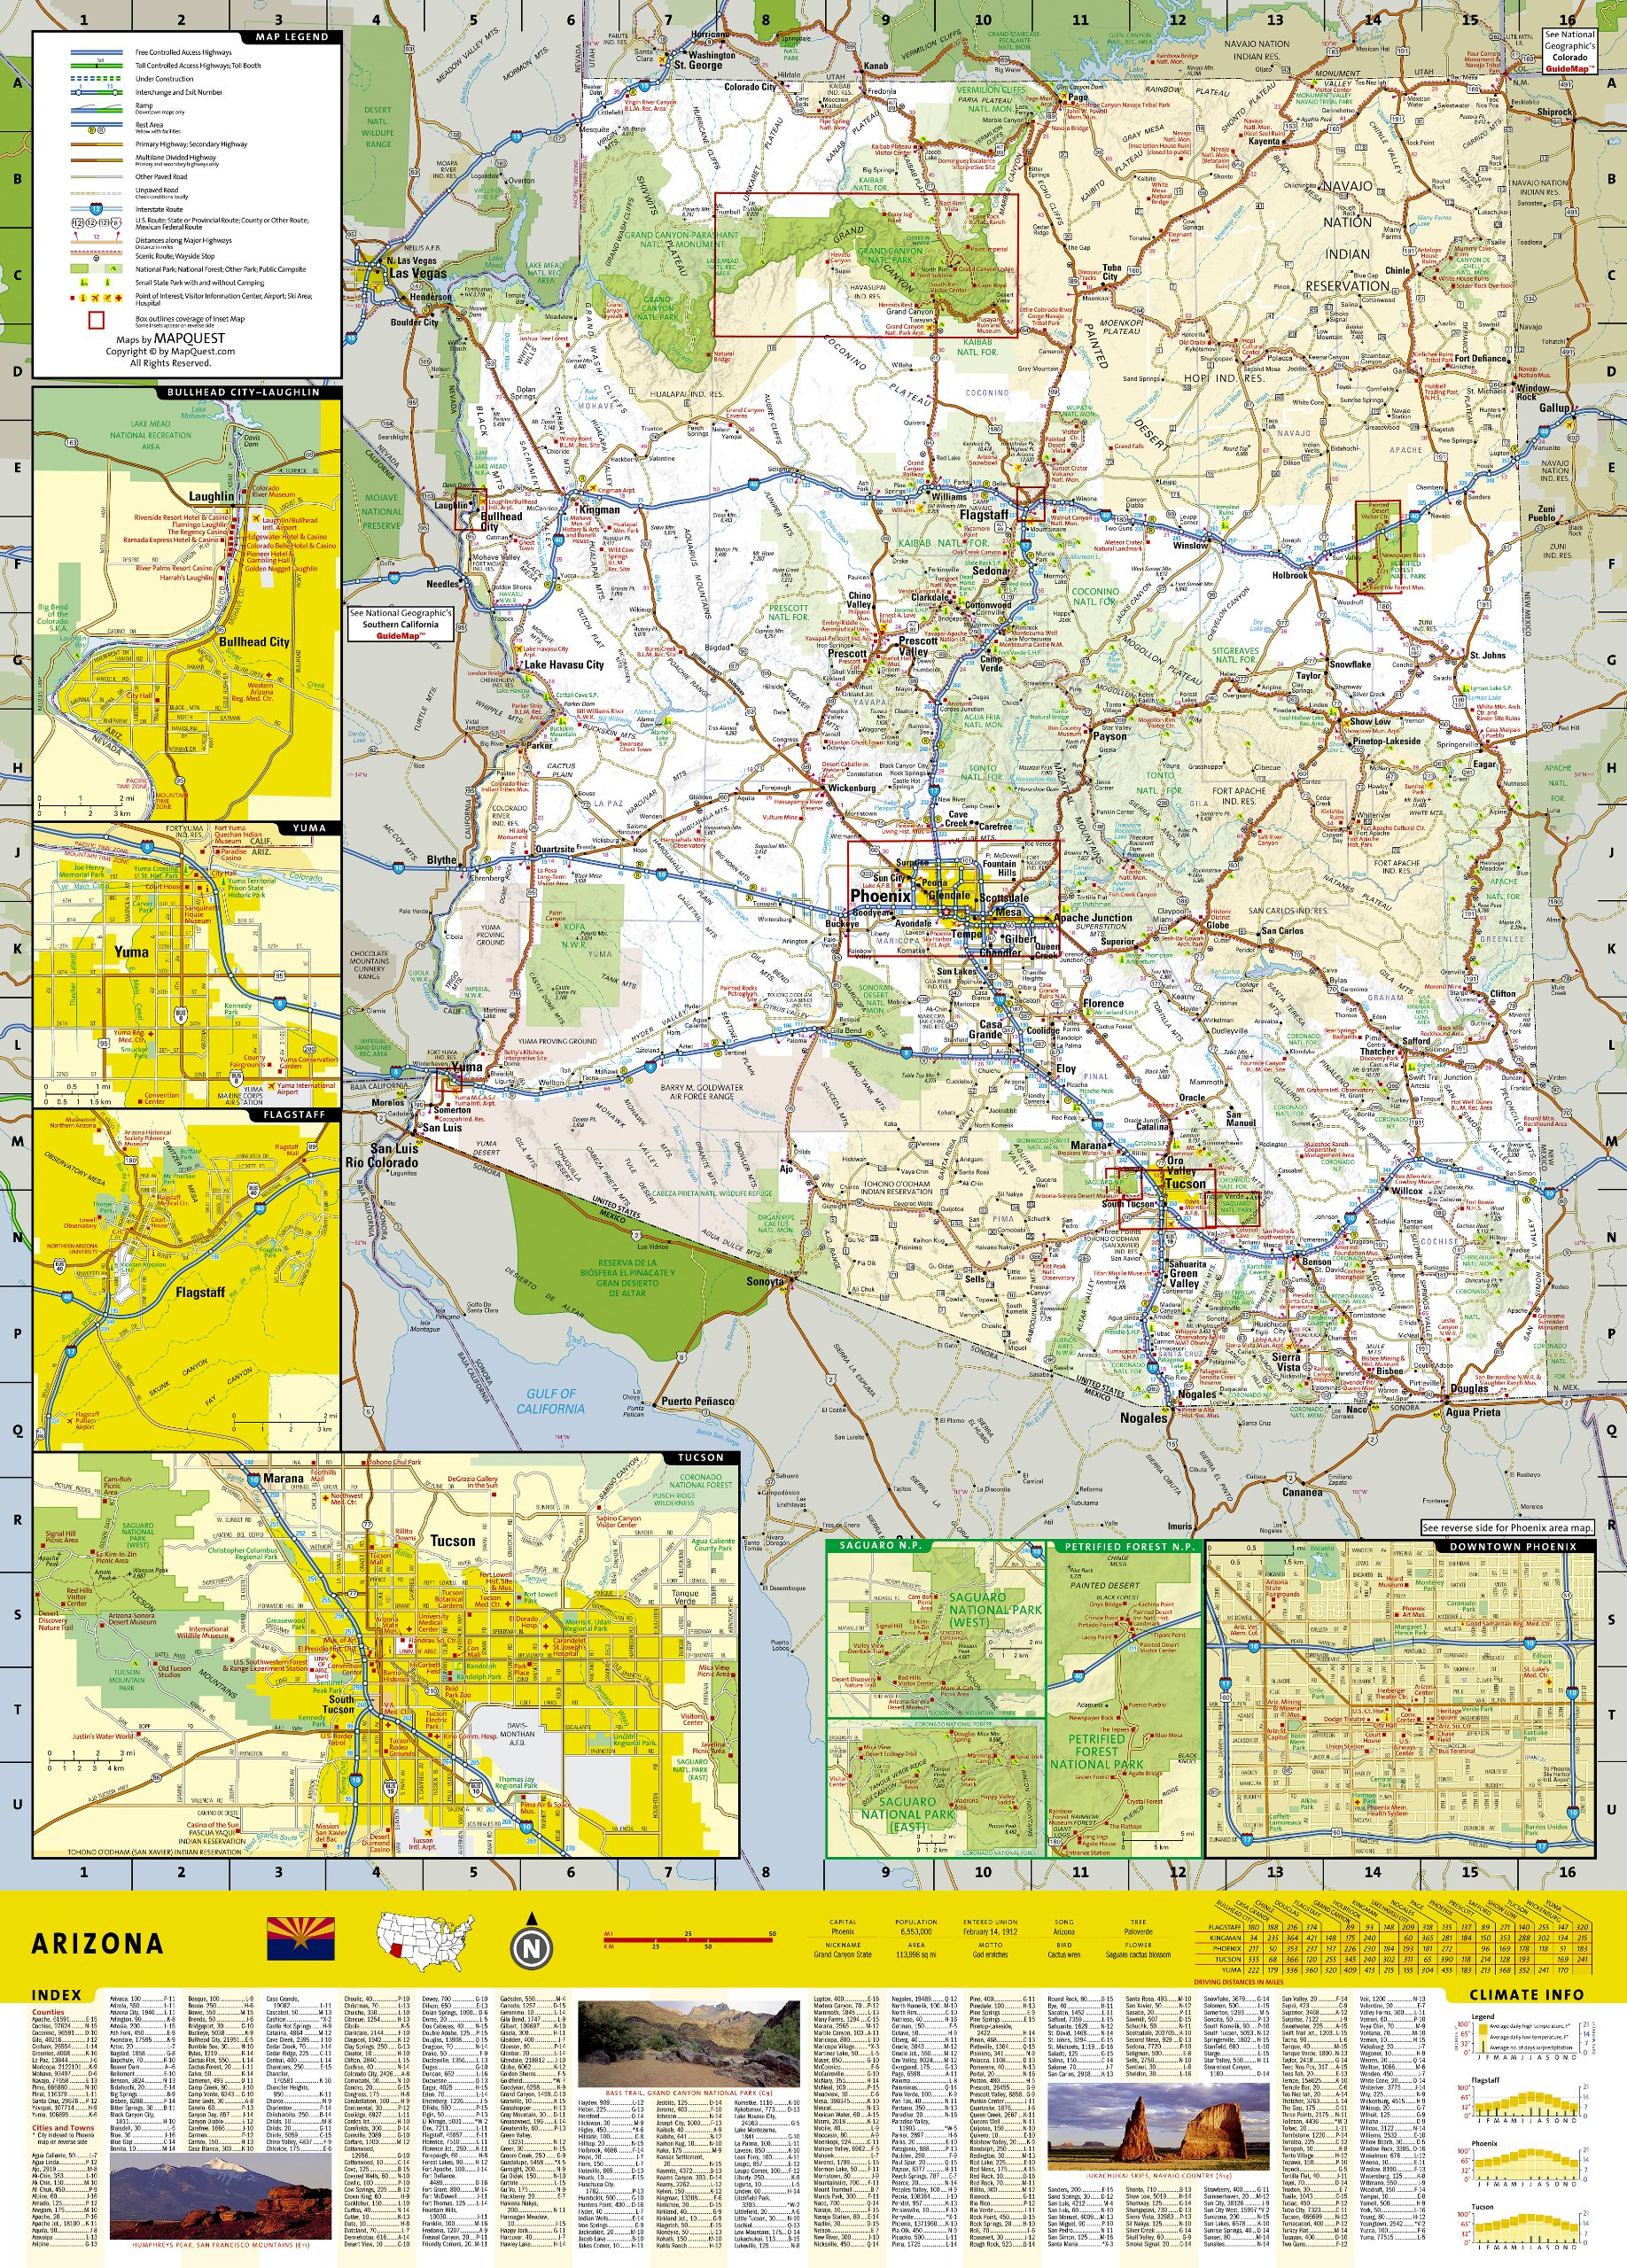 Arizona National Geographic Guide Map National Geographic Maps - Arizona city maps